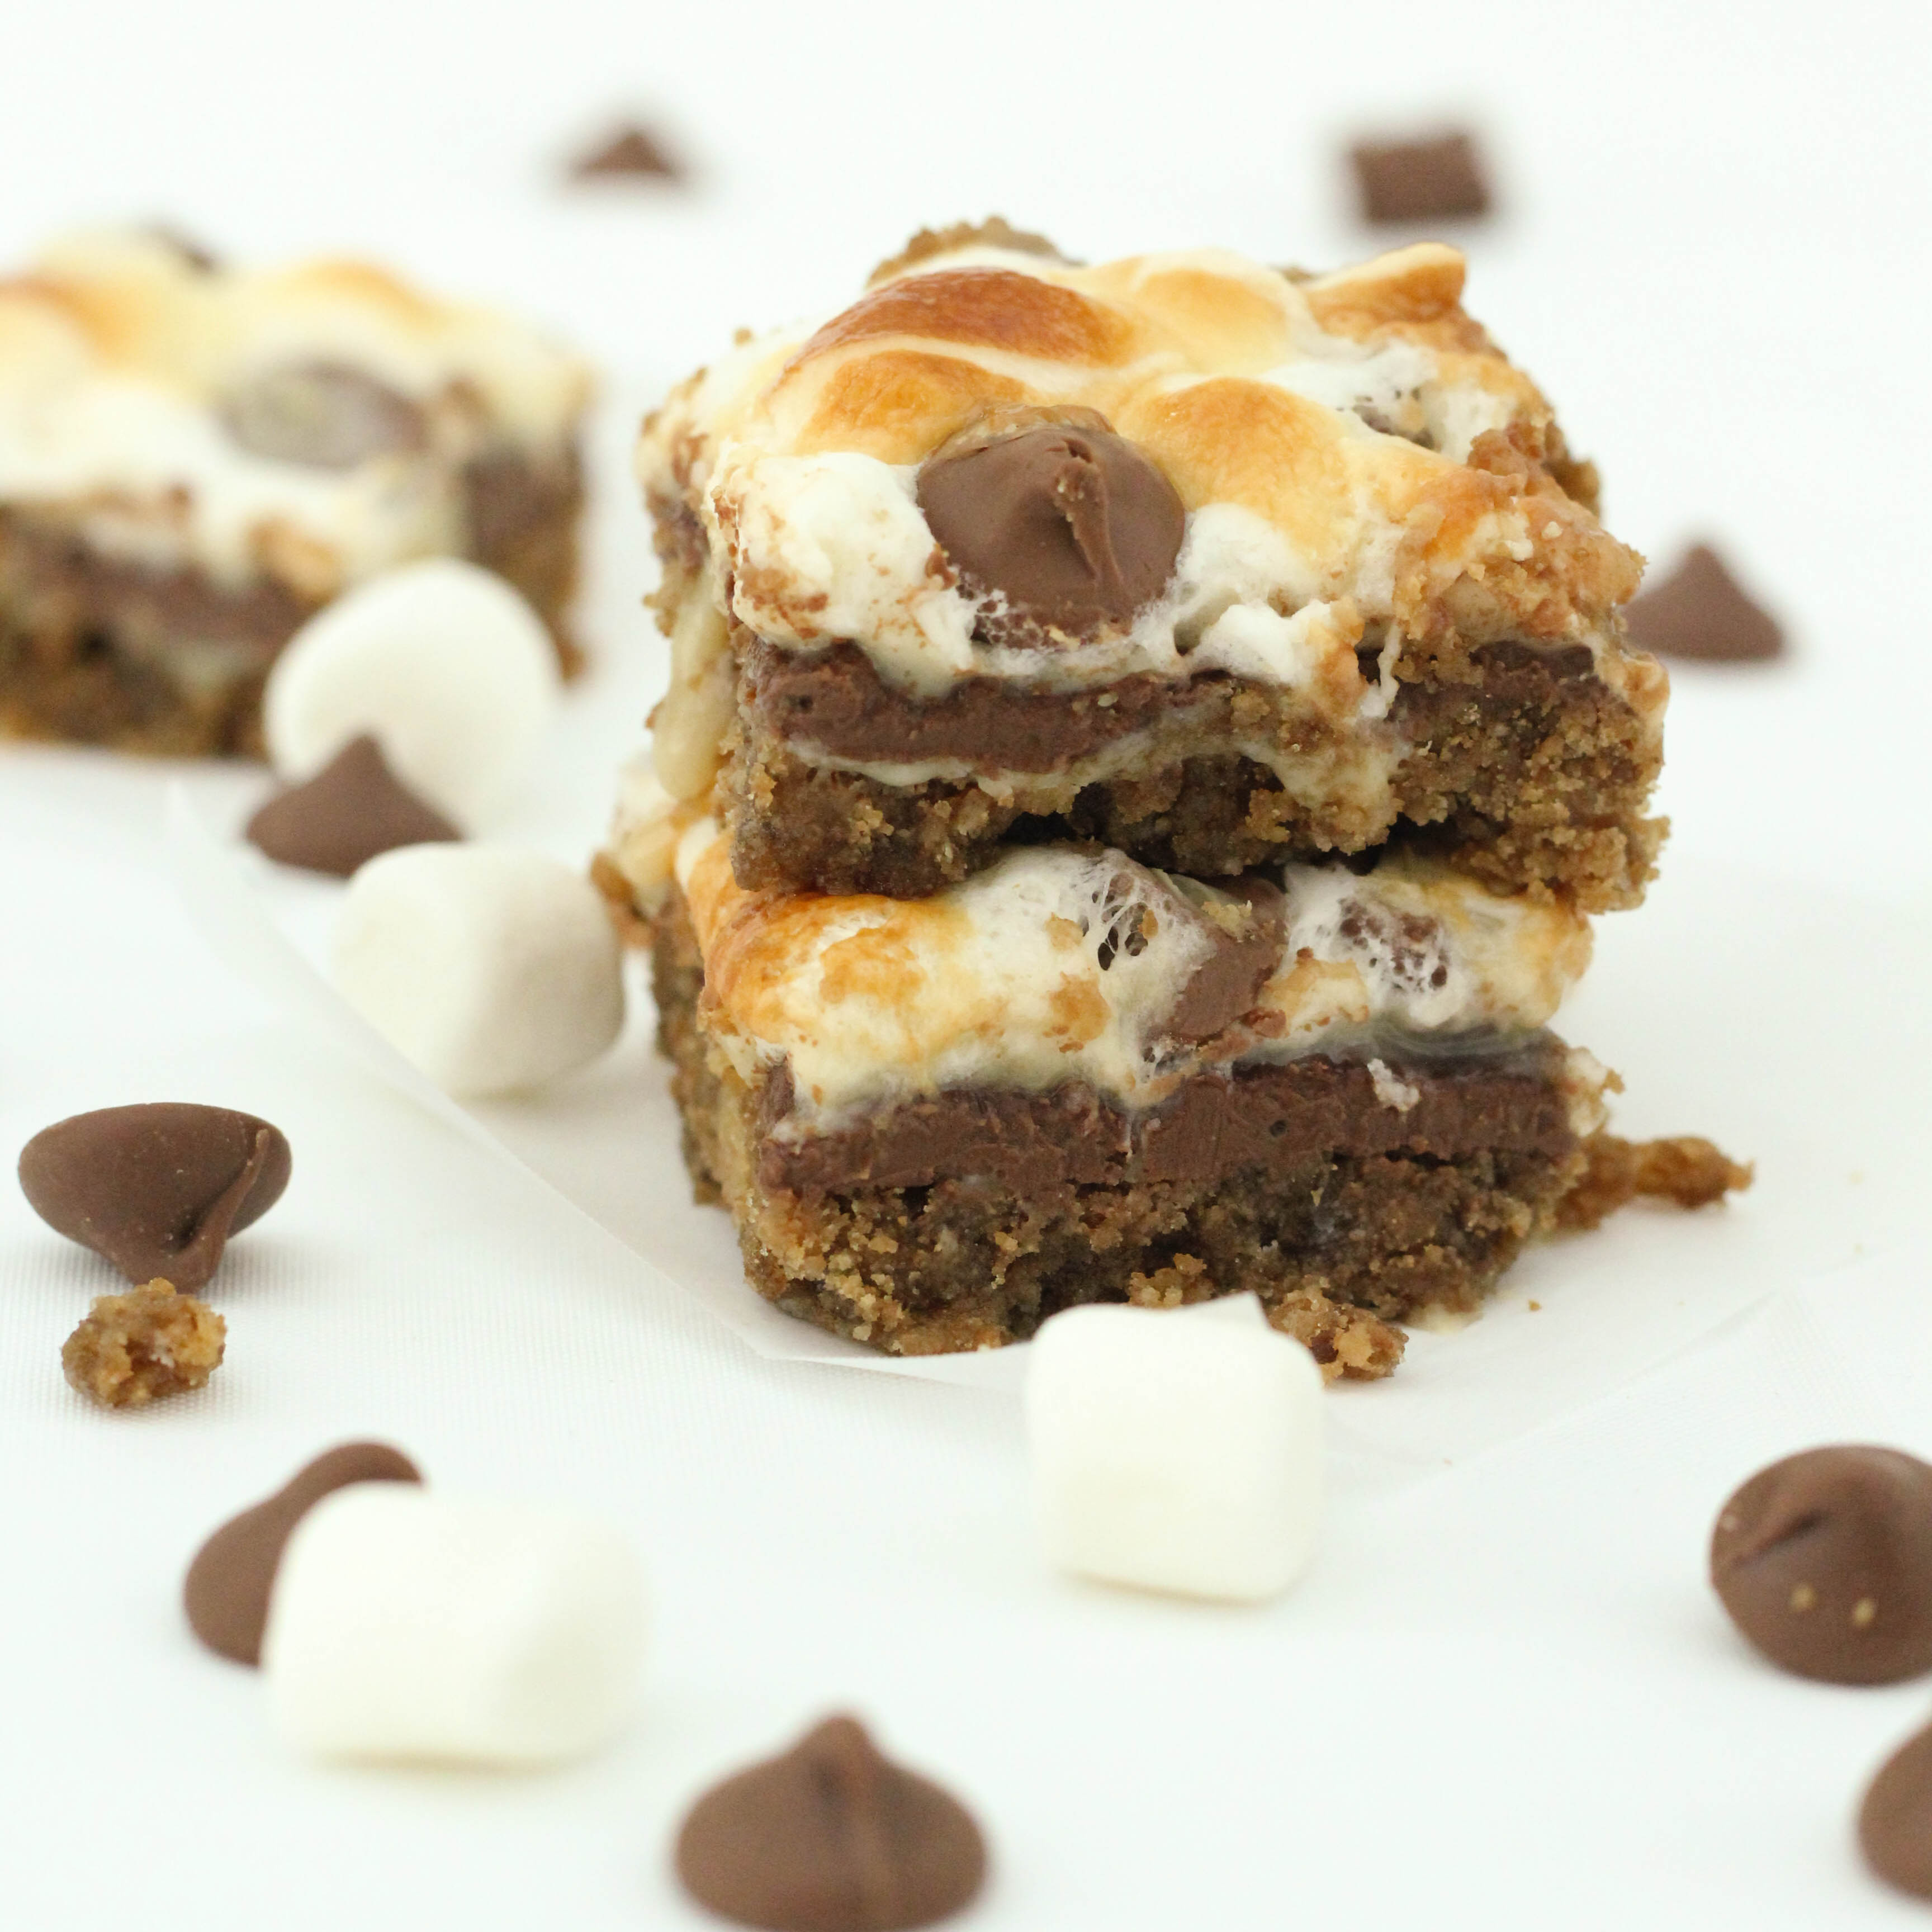 The flavors and texture of smores baked into bars is so much more practical than standing around a campfire. I'm sure you can relate. And who can resist super soft, chewy, gooey bars that are loaded with great texture. The batter is a stir-together, one bowl recipe that comes together in less than 5 minutes [ ].